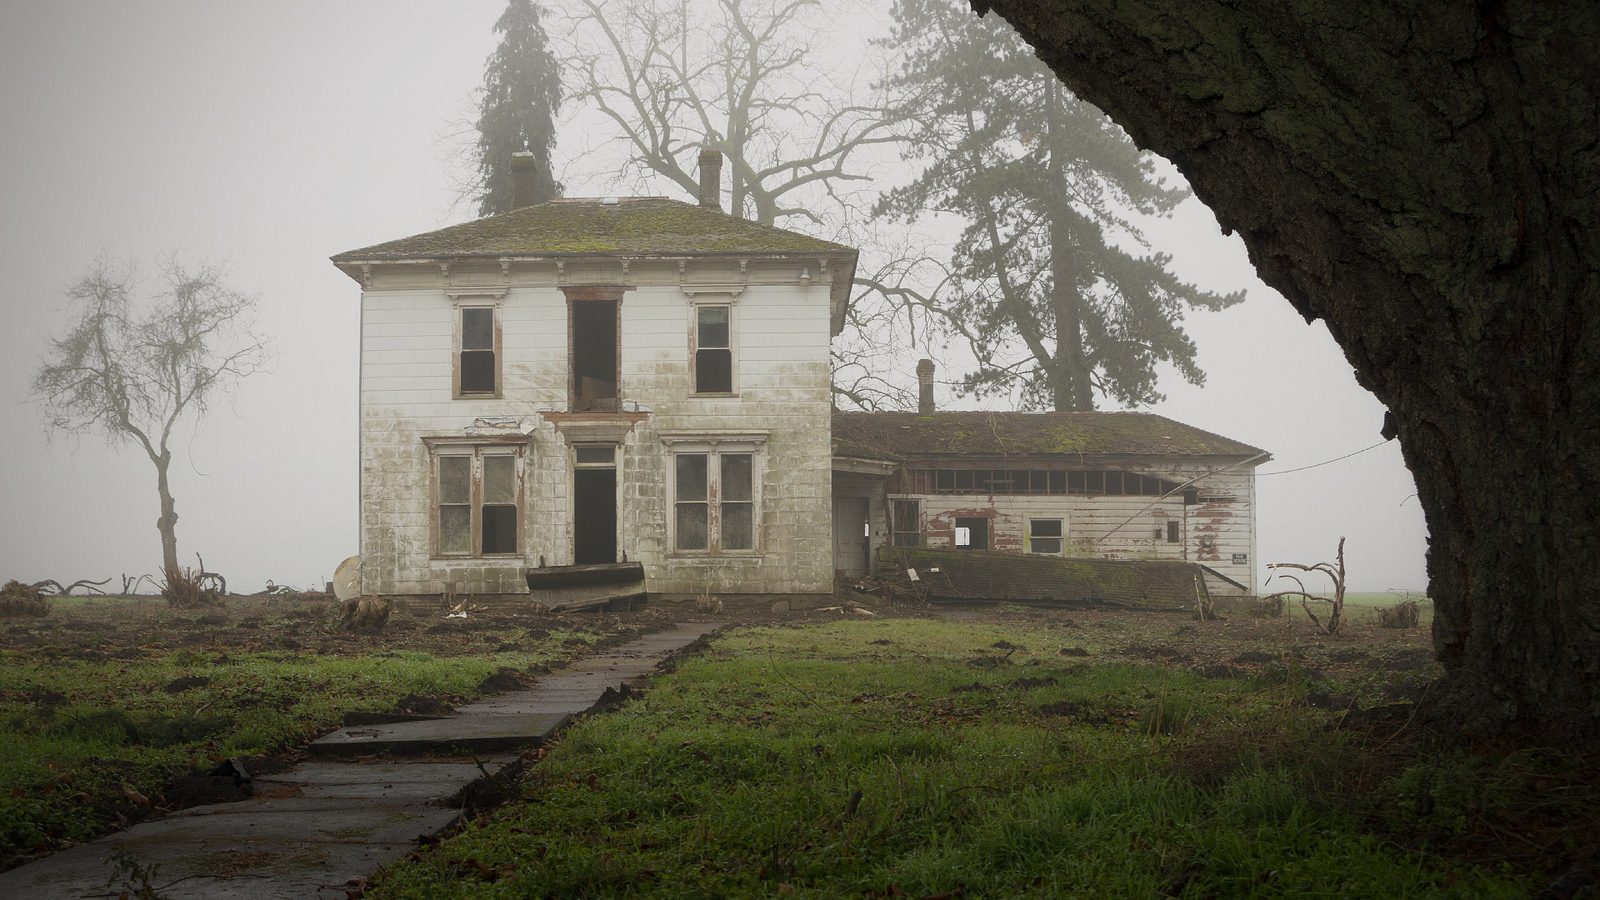 25 abandoned places in oregon that are downright awesome for Building a home in oregon